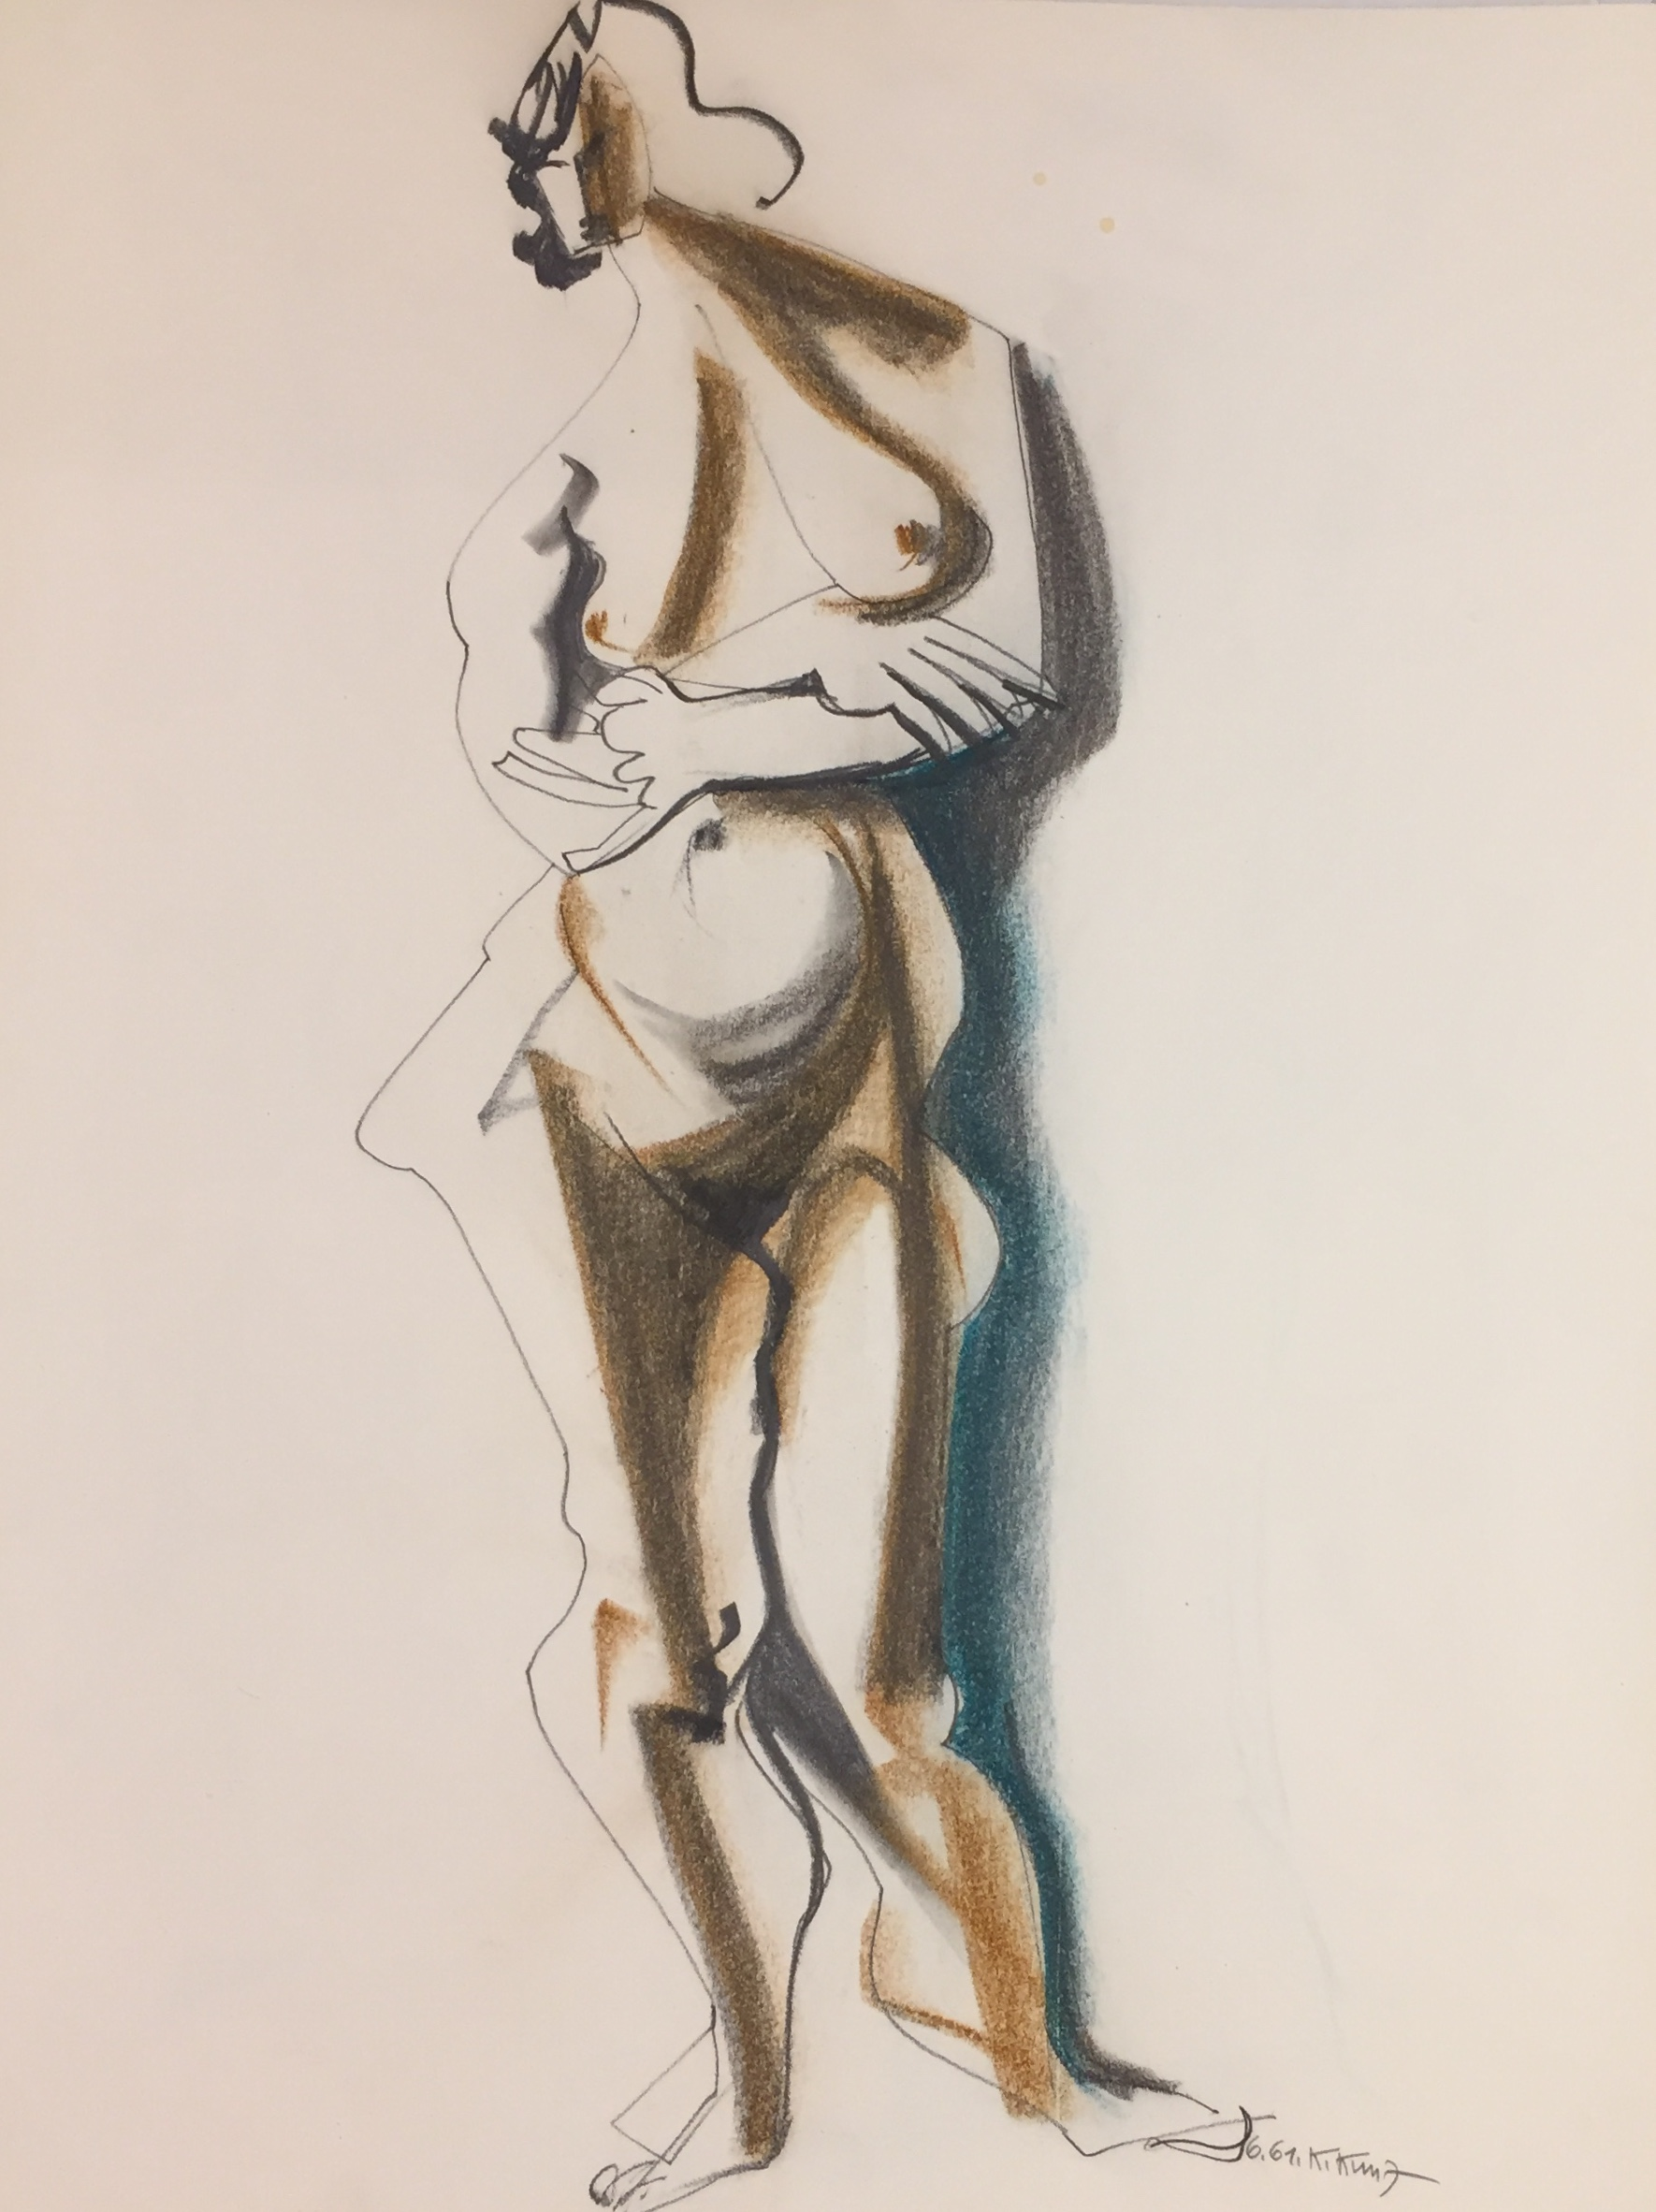 Karl Kunz | Nude | 1961 | pencil, charcoal and pastel | signed and dated | 65 x 50 cm